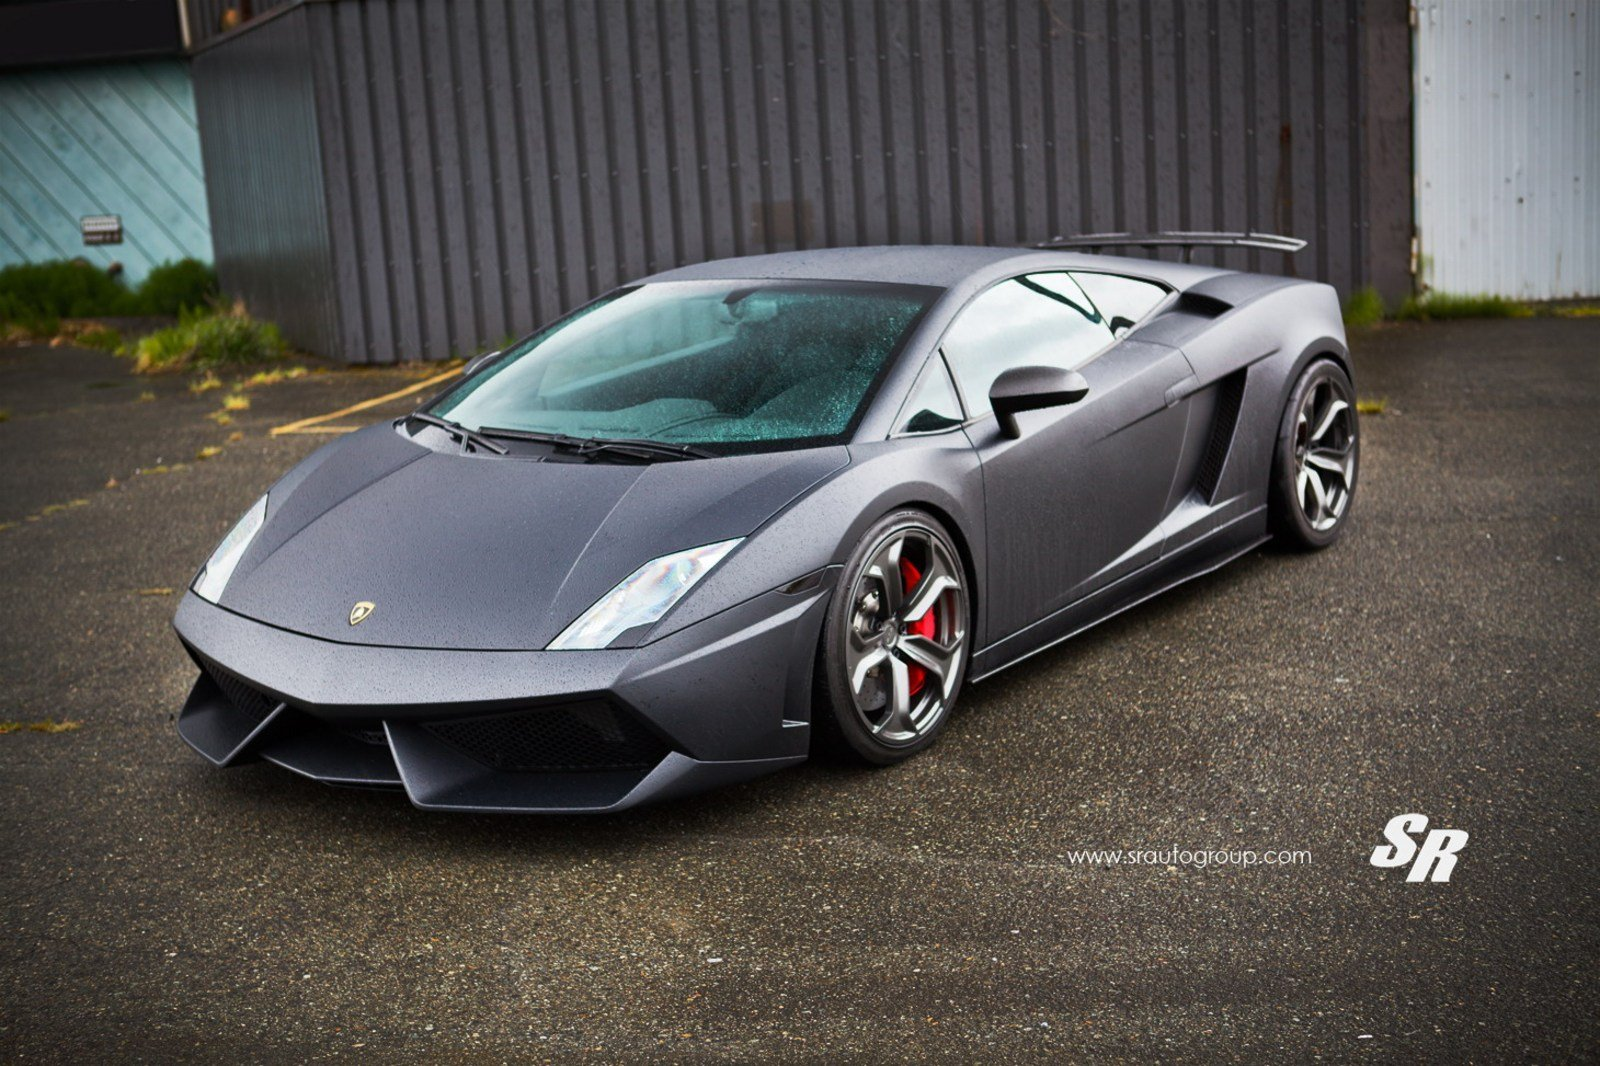 2013 Lamborghini Gallardo By Underground Racing And Sr